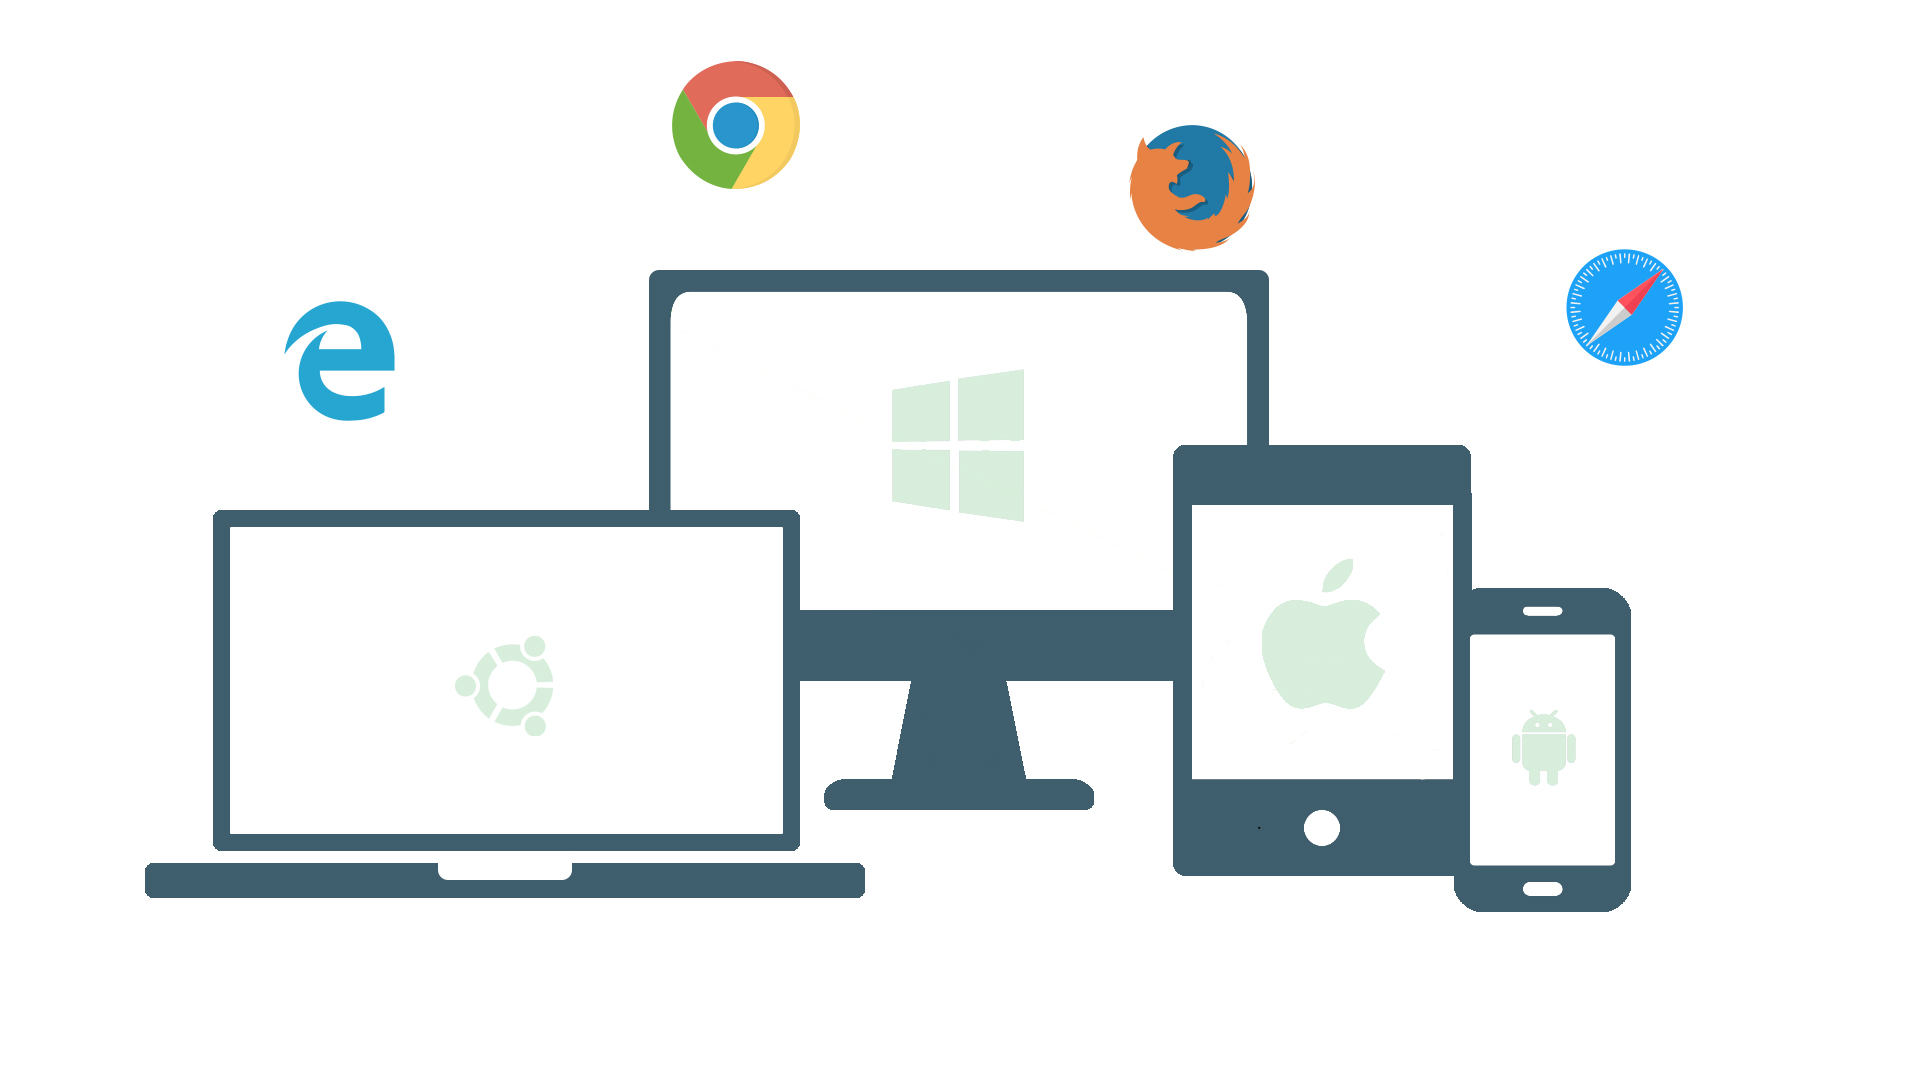 Multiple browsers and devices